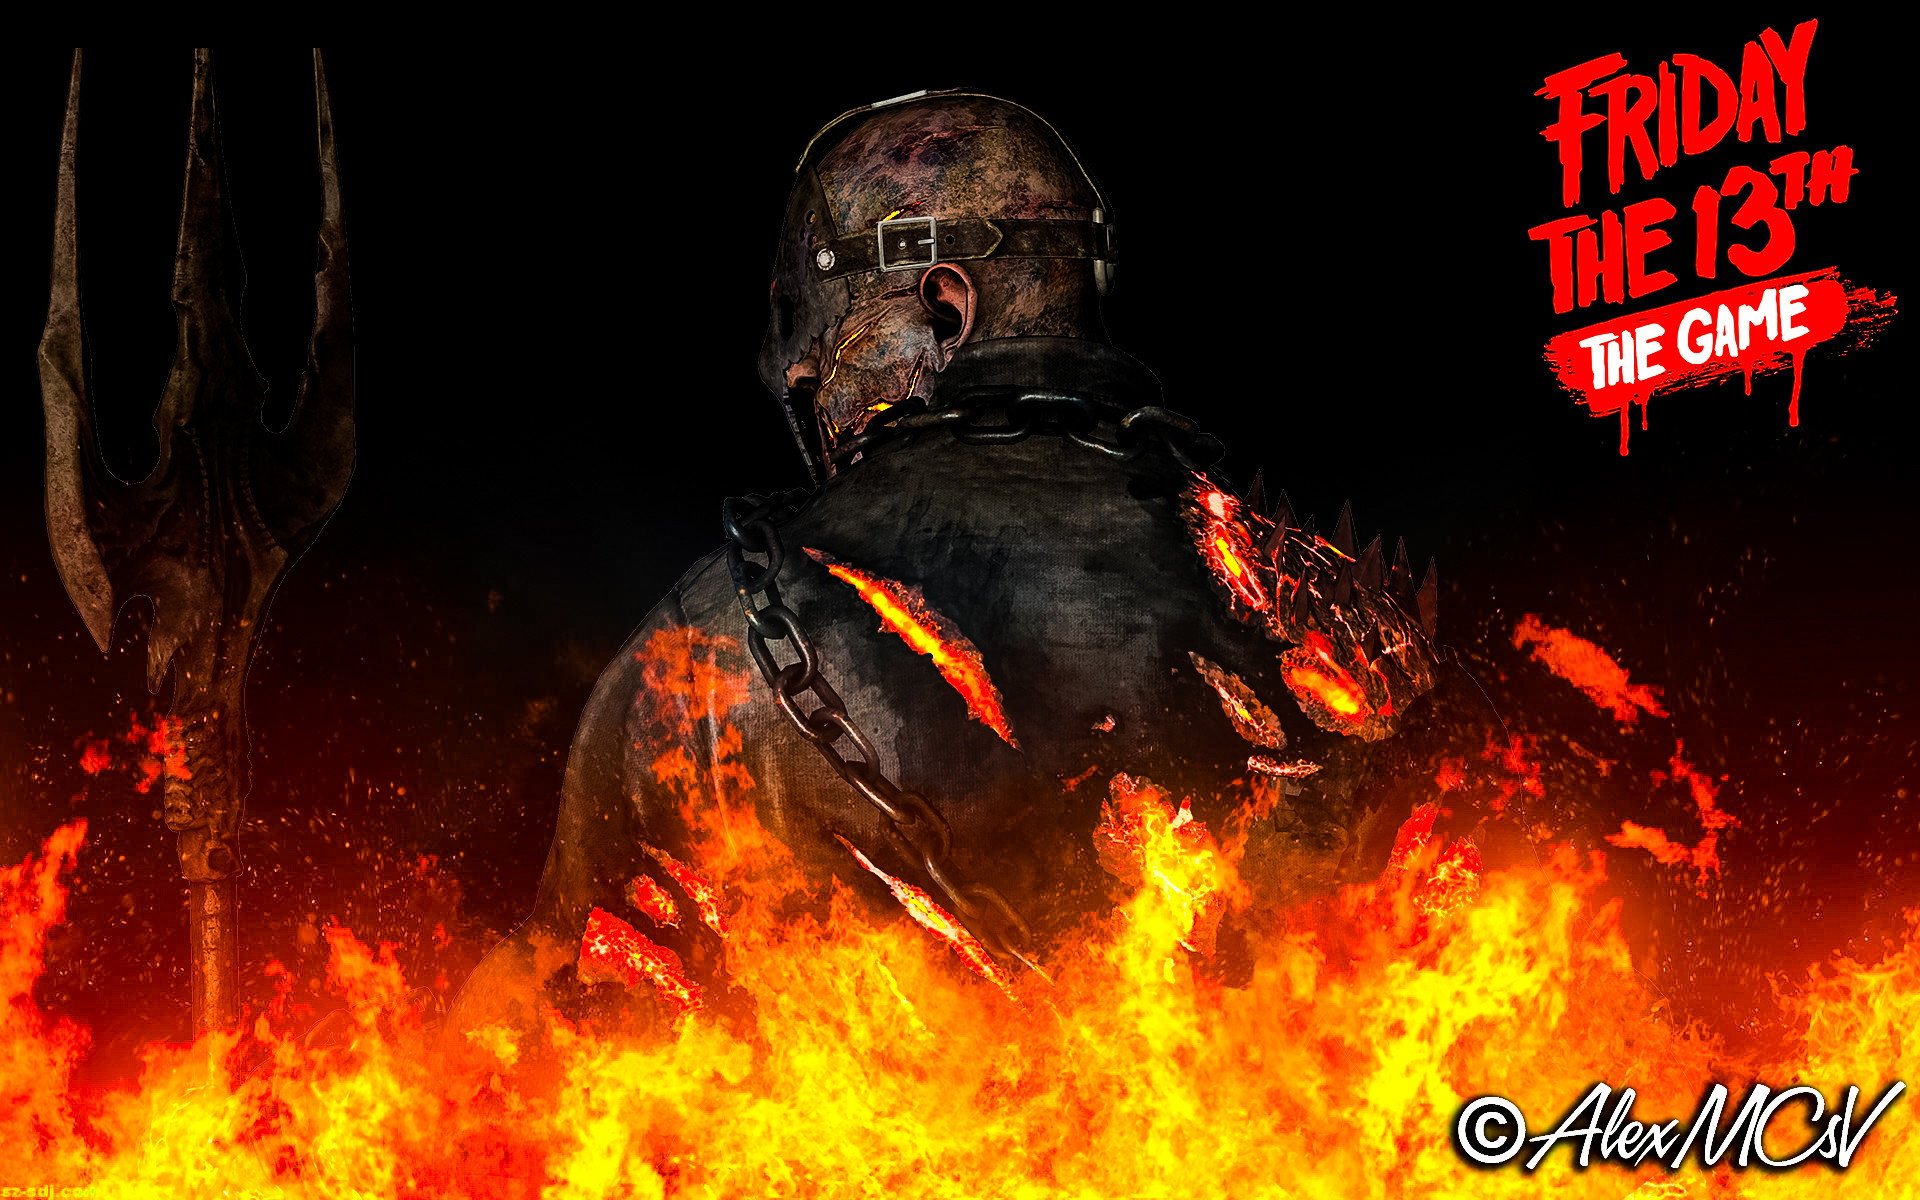 1920x1200 ... SAVINI JASON WALLPAPER - FRIDAY THE 13th by AlexMCsV